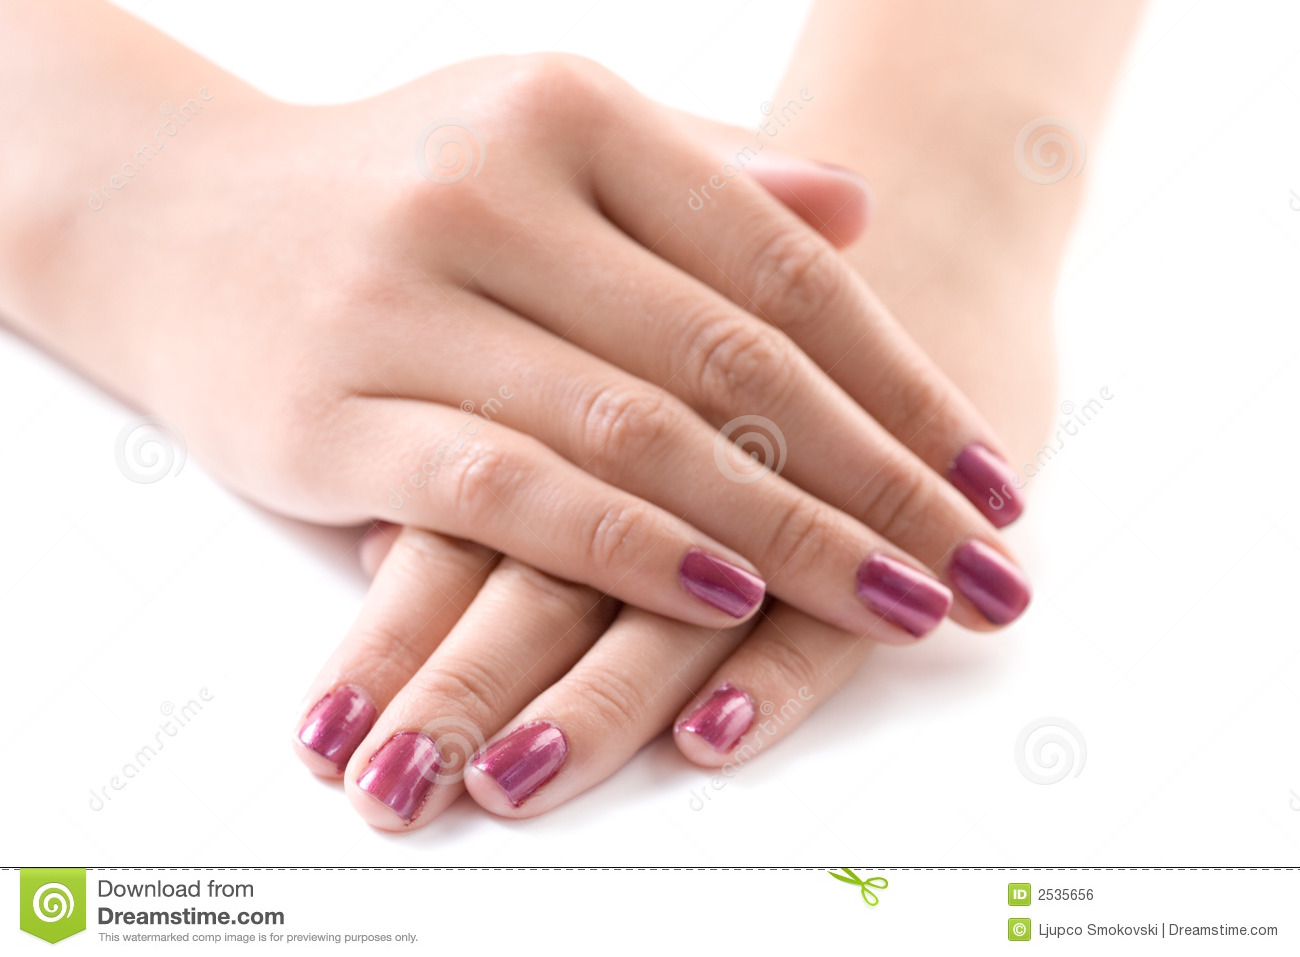 Manicured Female Hands Royalty Free Stock Image - Image: 2535656